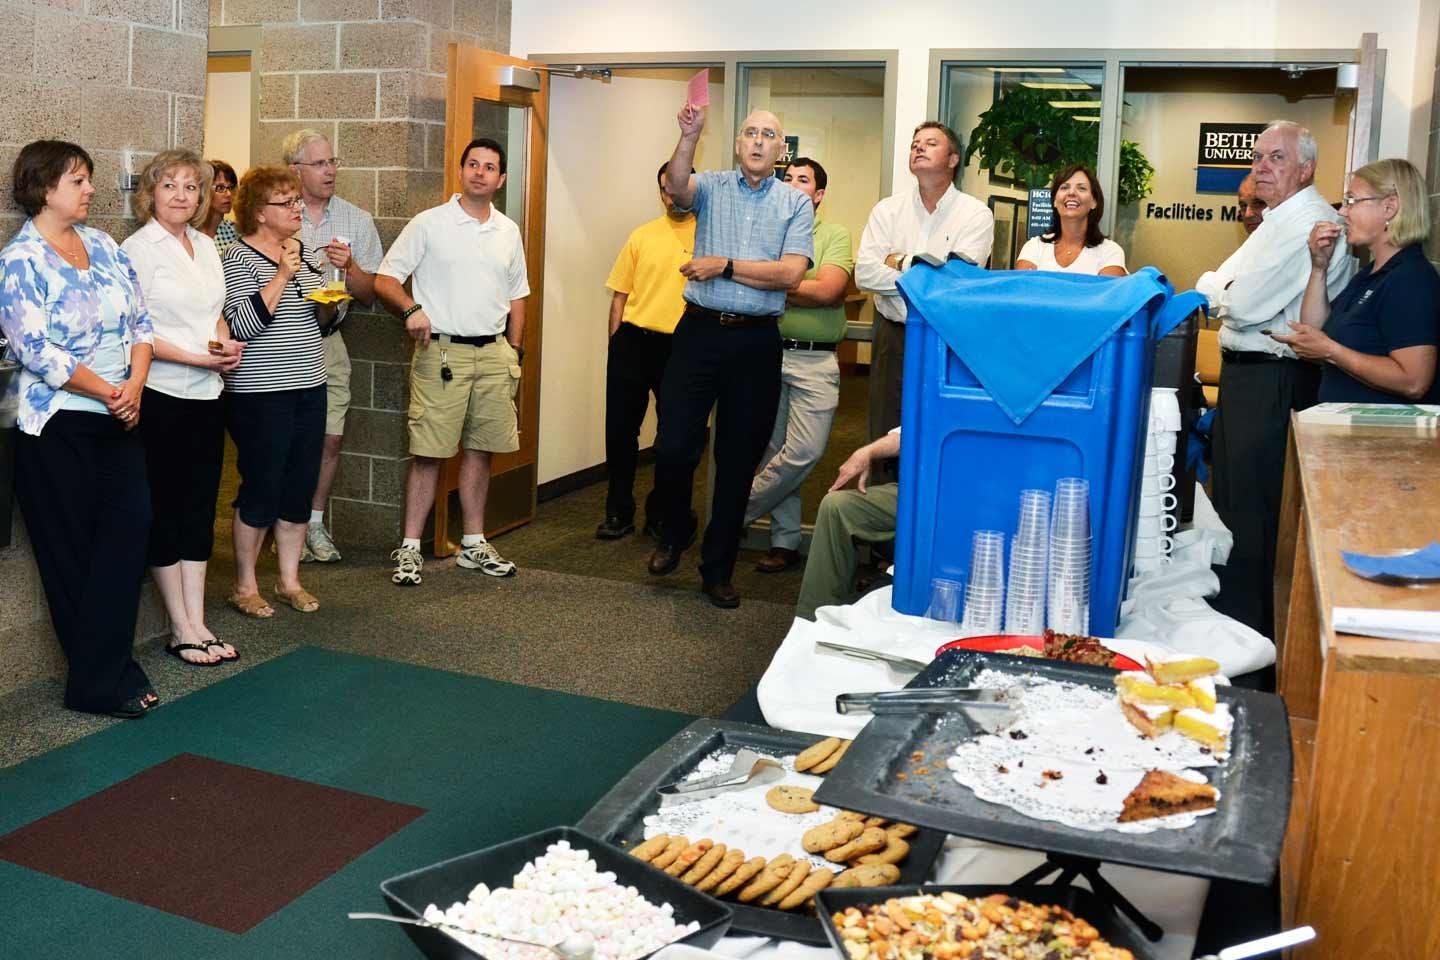 Facilities Management Celebrates New Office